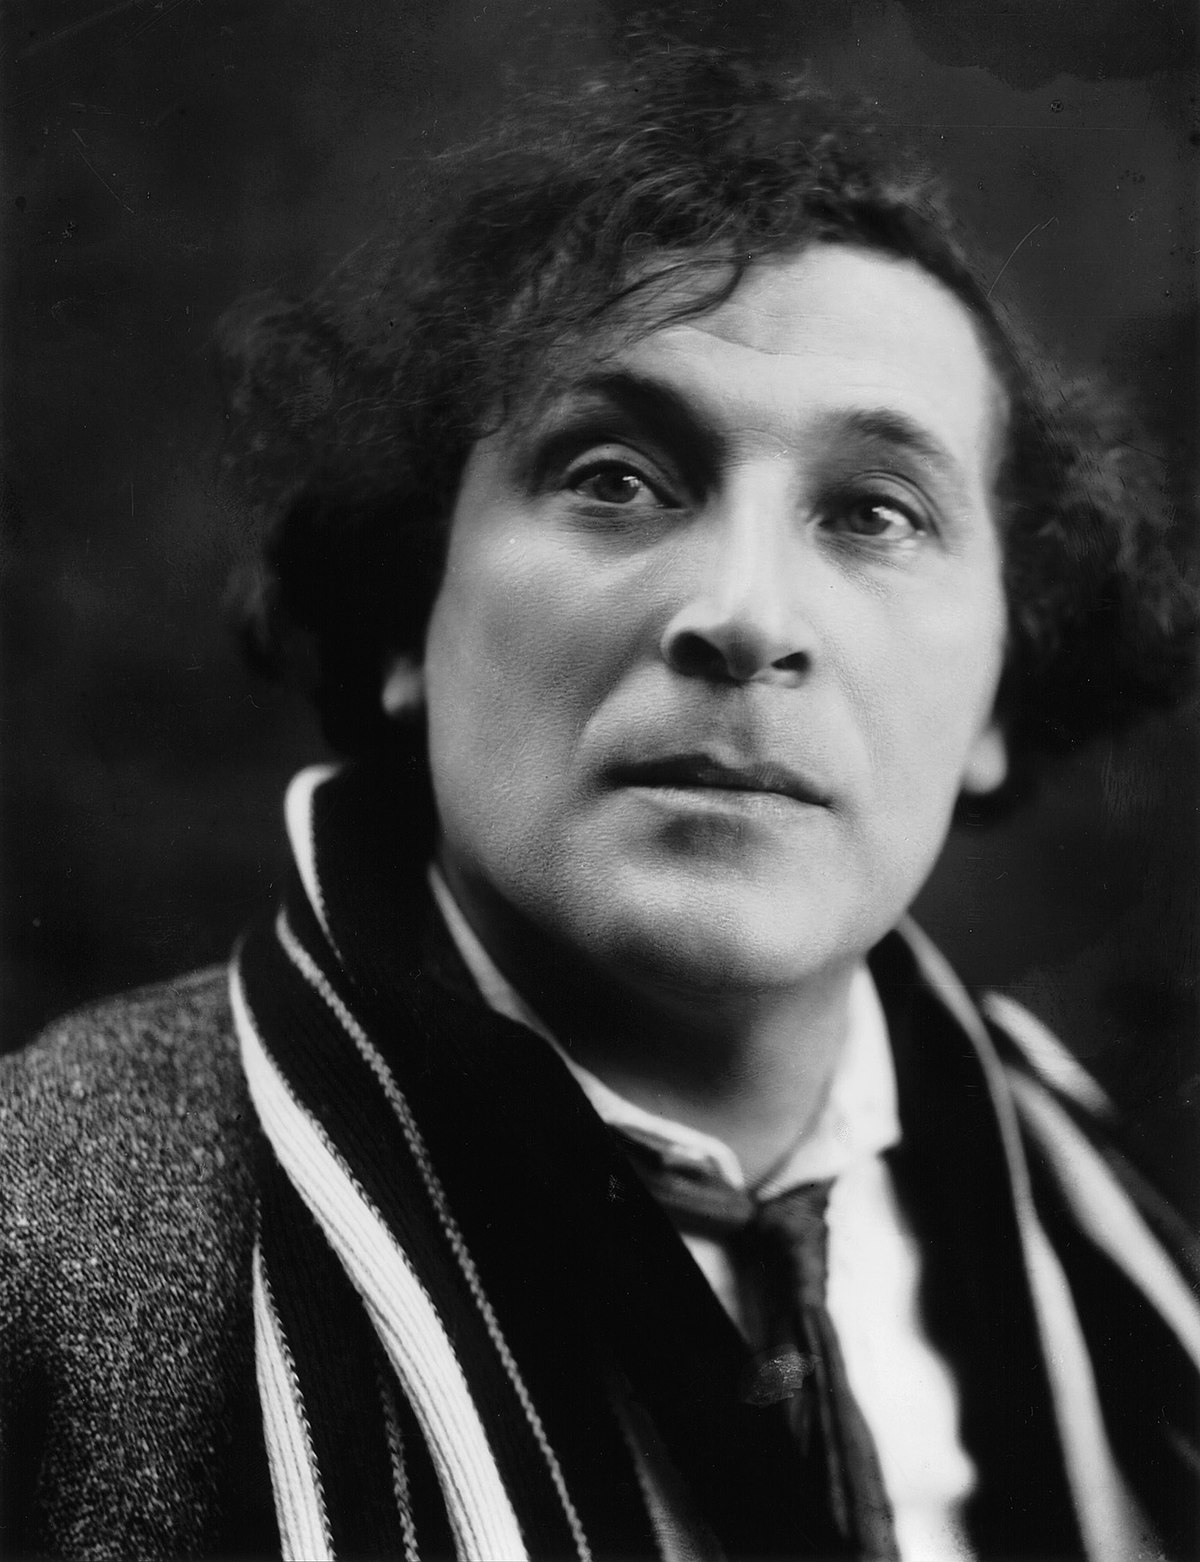 marc chagall interview : marc chagall double portrait au verre de vin :  marc chagall wiki english en 2020/2021